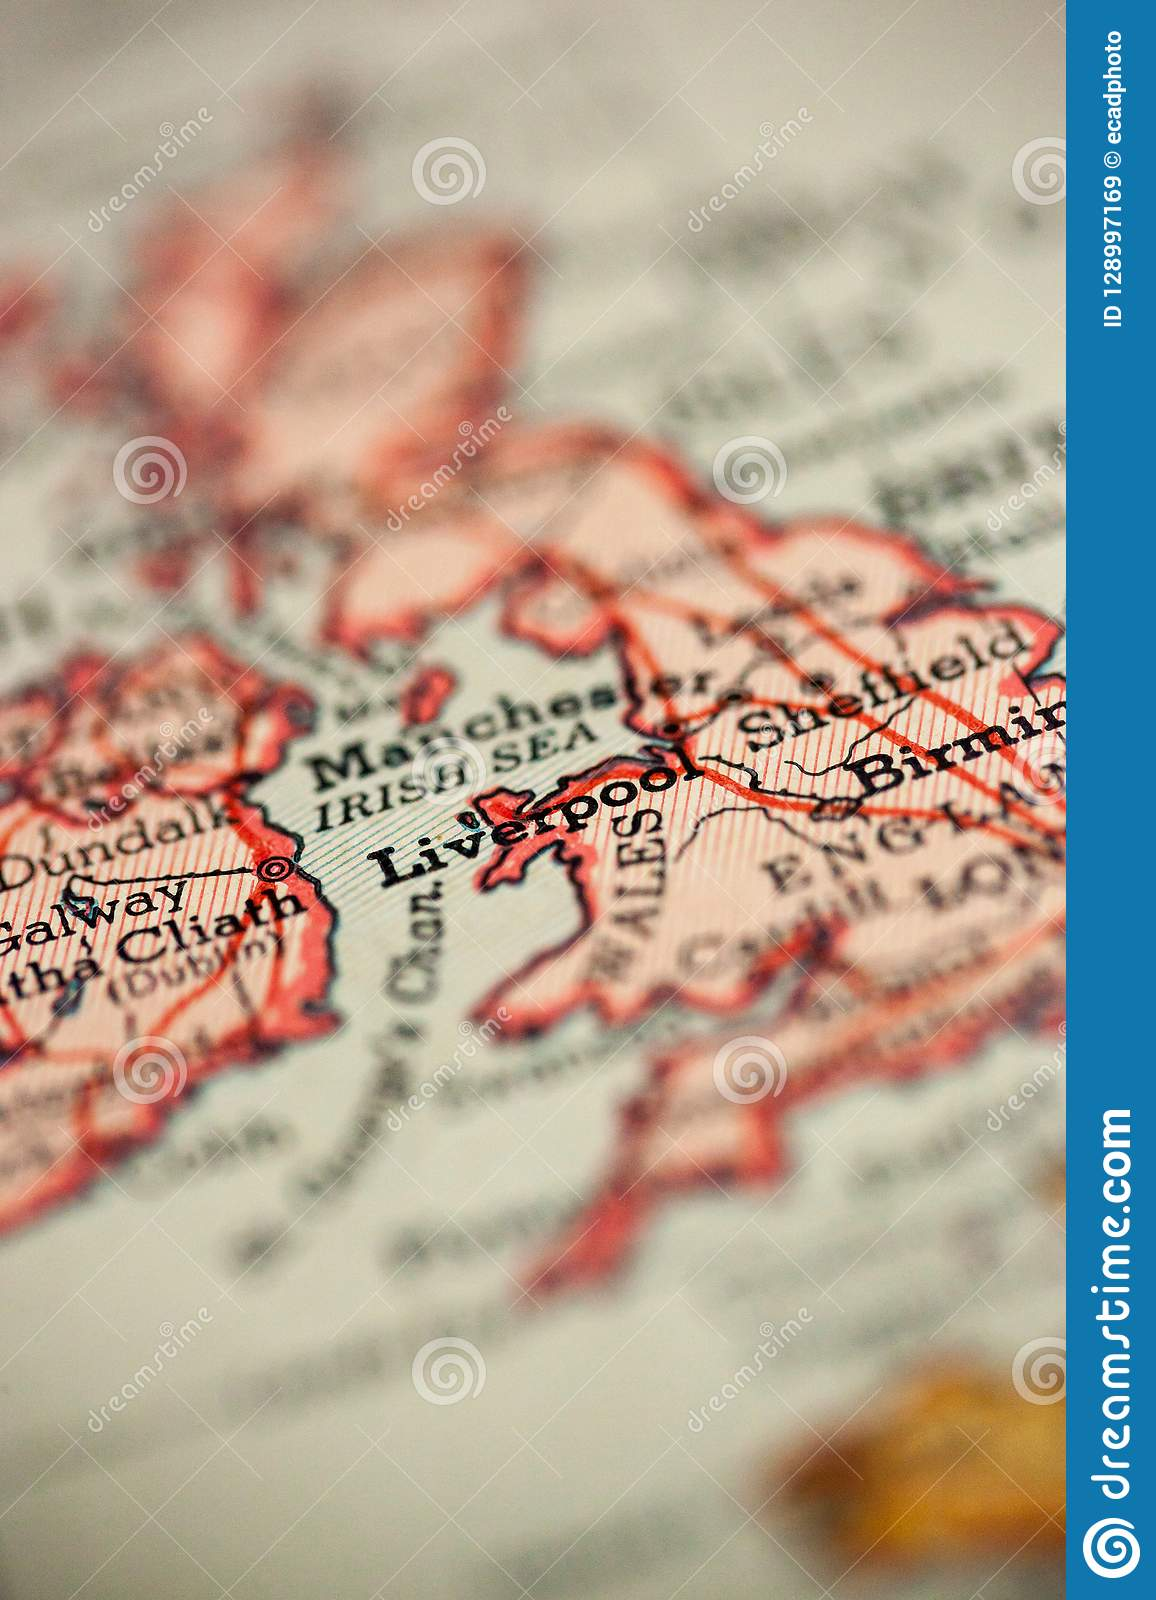 Liverpool England on map stock image. Image of vacation - 128997169